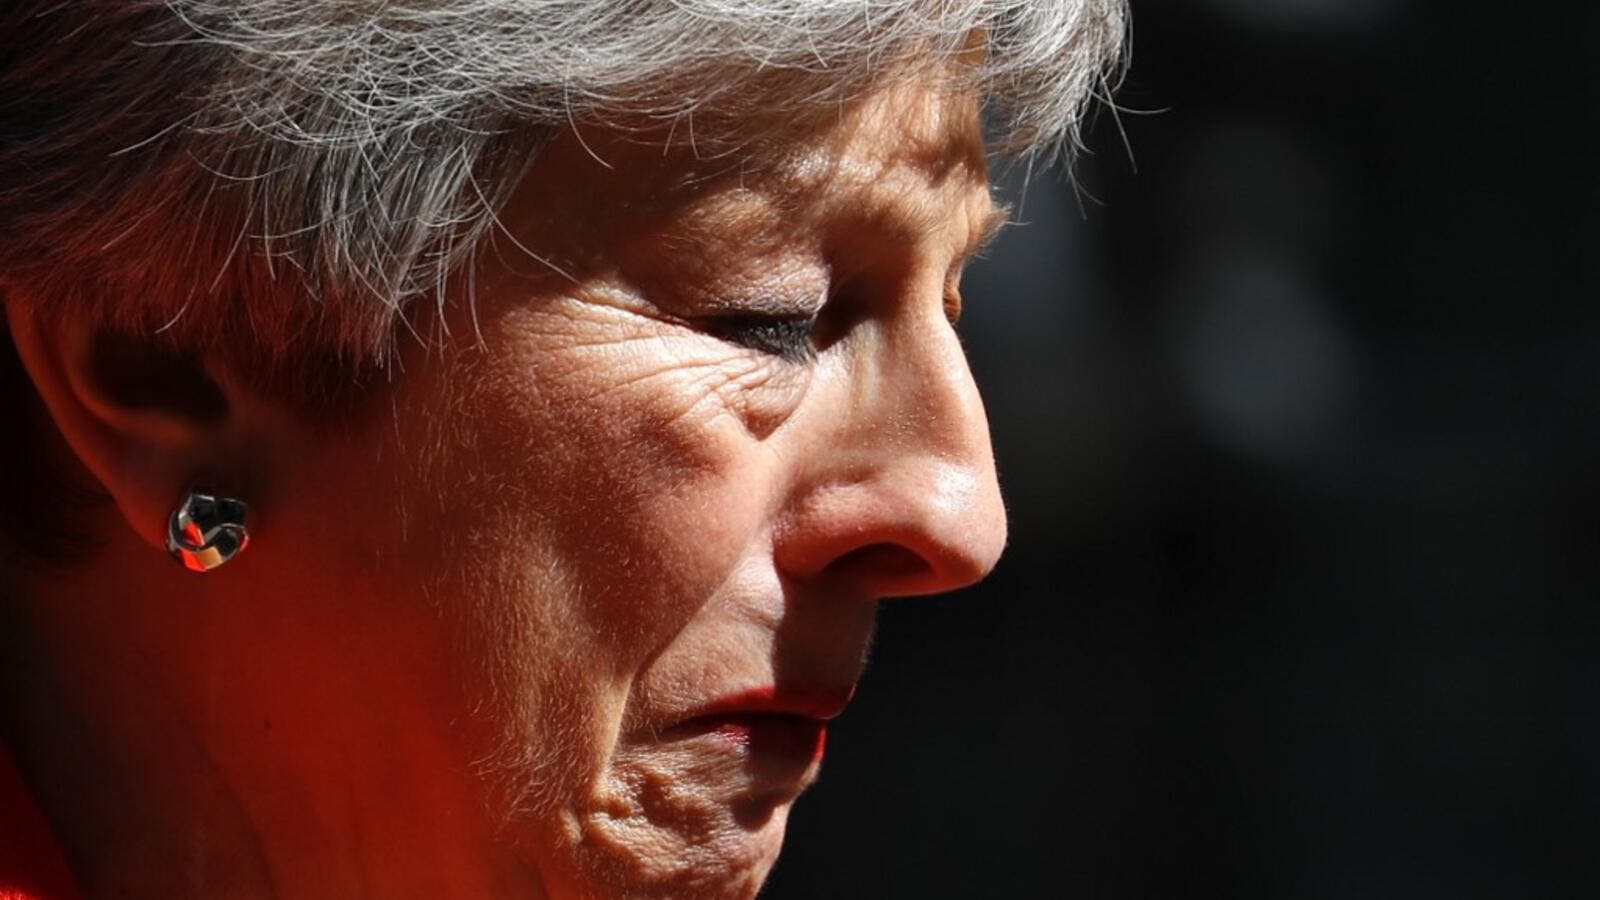 Britain's Prime Minister Theresa May reacts as she announces her resignation outside 10 Downing street in central London on May 24, 2019. Beleaguered British Prime Minister Theresa May announced on Friday that she will resign on June 7, 2019 following a Conservative Party mutiny over her remaining in power. Tolga AKMEN / AFP